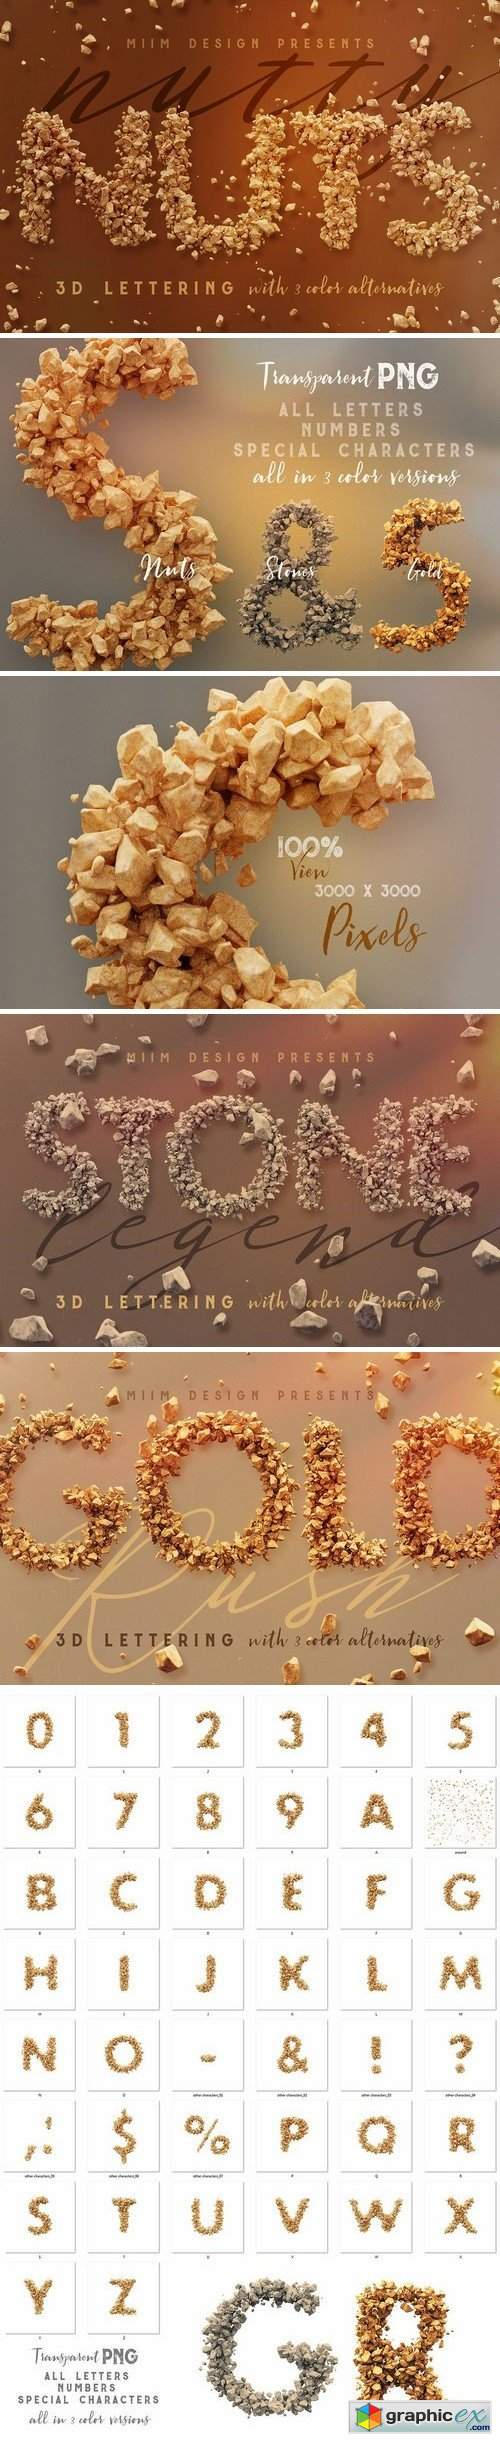 Nutty Nuts - 3D Lettering